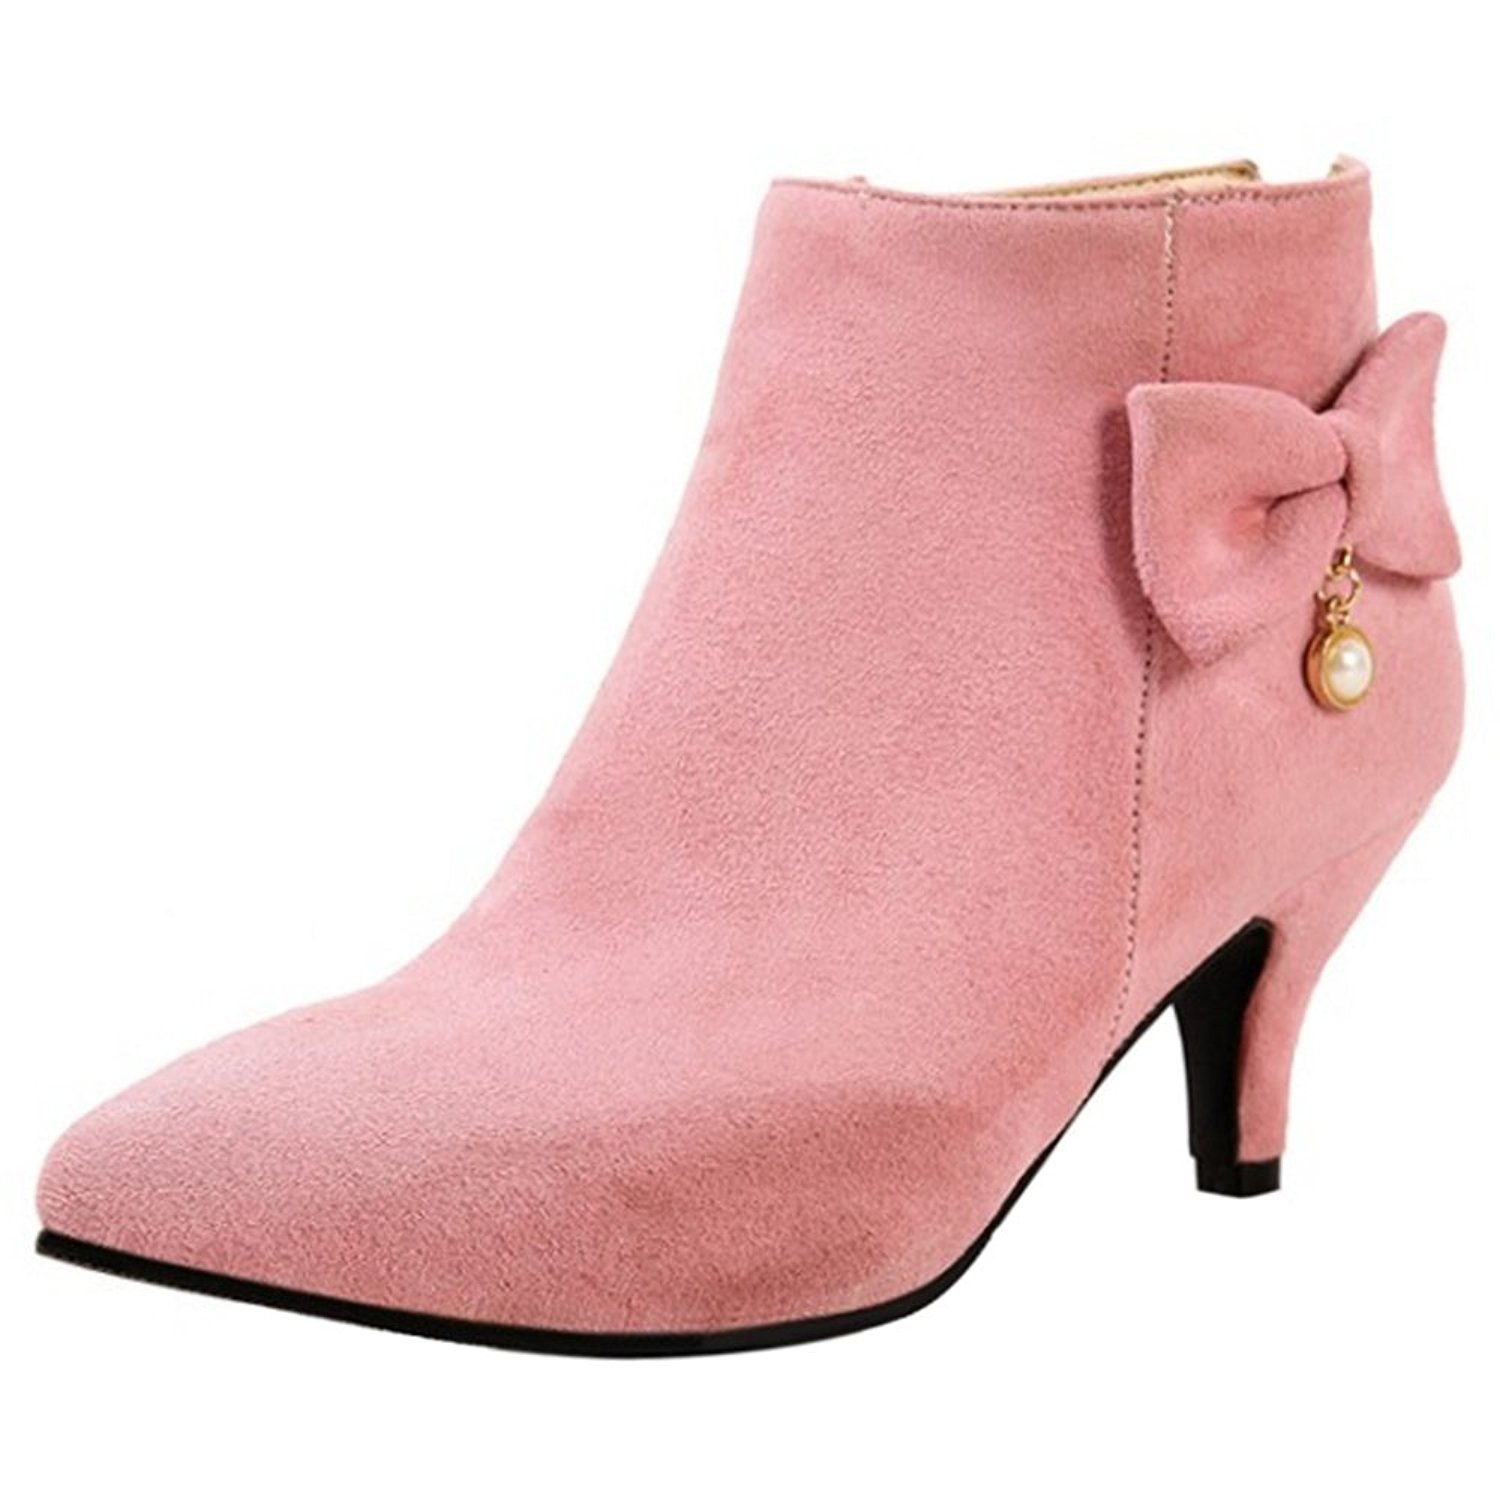 cef967bfe57 Get Quotations · RAZAMAZA Women Elegant Bowknot Pointed Toe Kitten Heels  Ankle Dress Booties Shoes